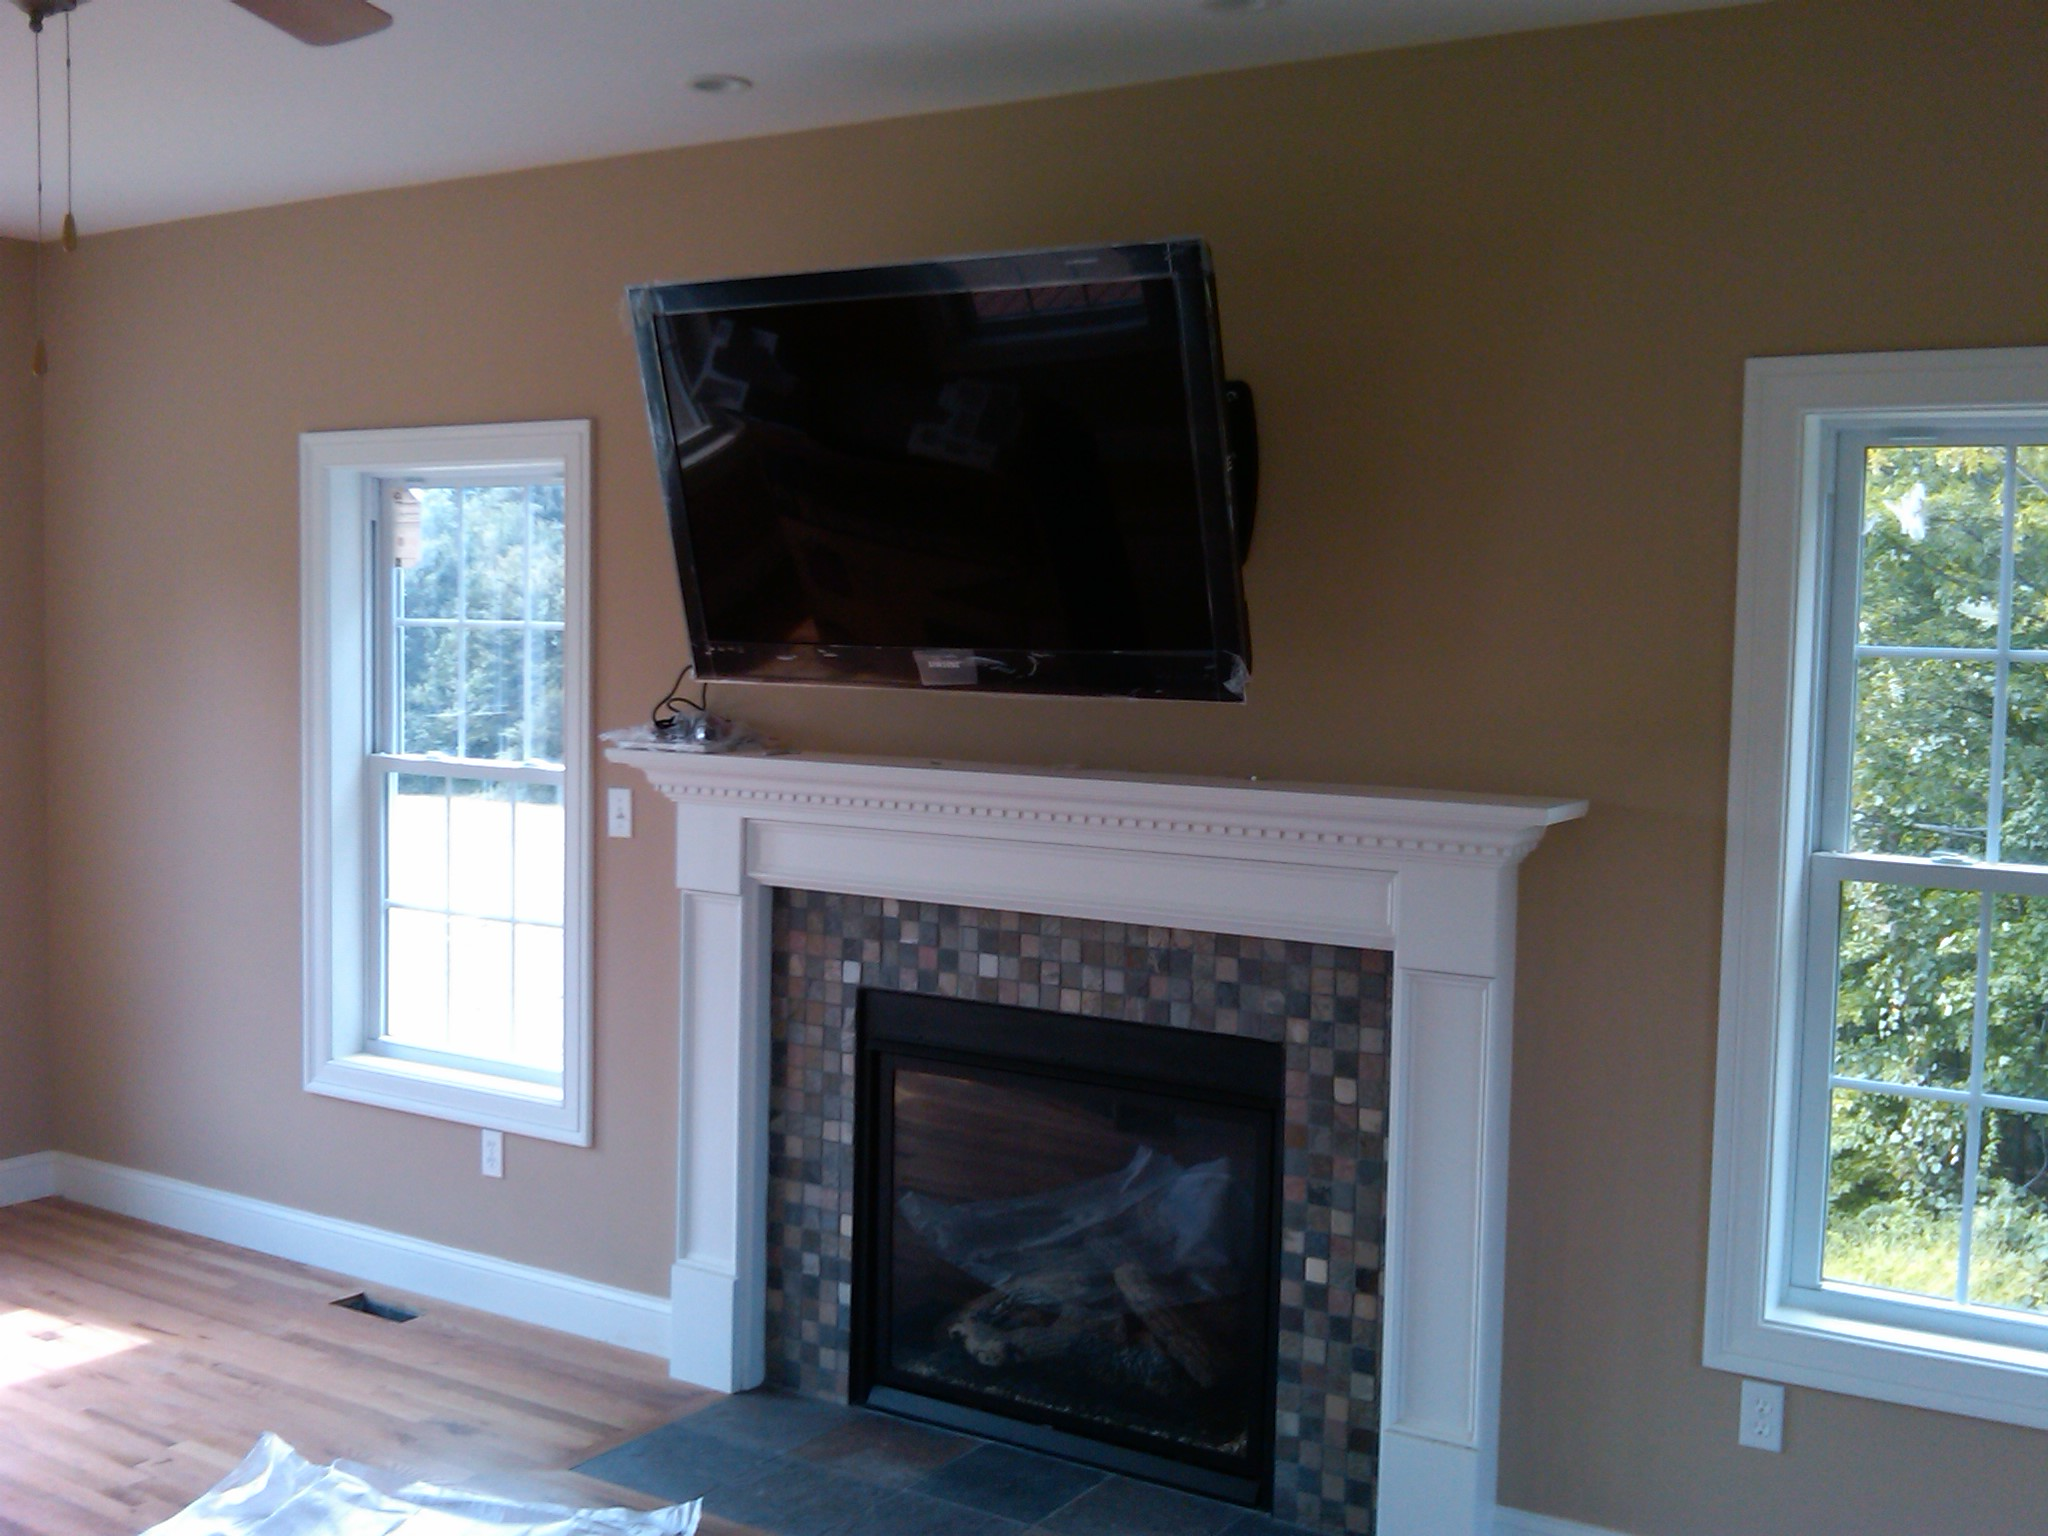 Stonington CT – TV over fireplace on articulating mount